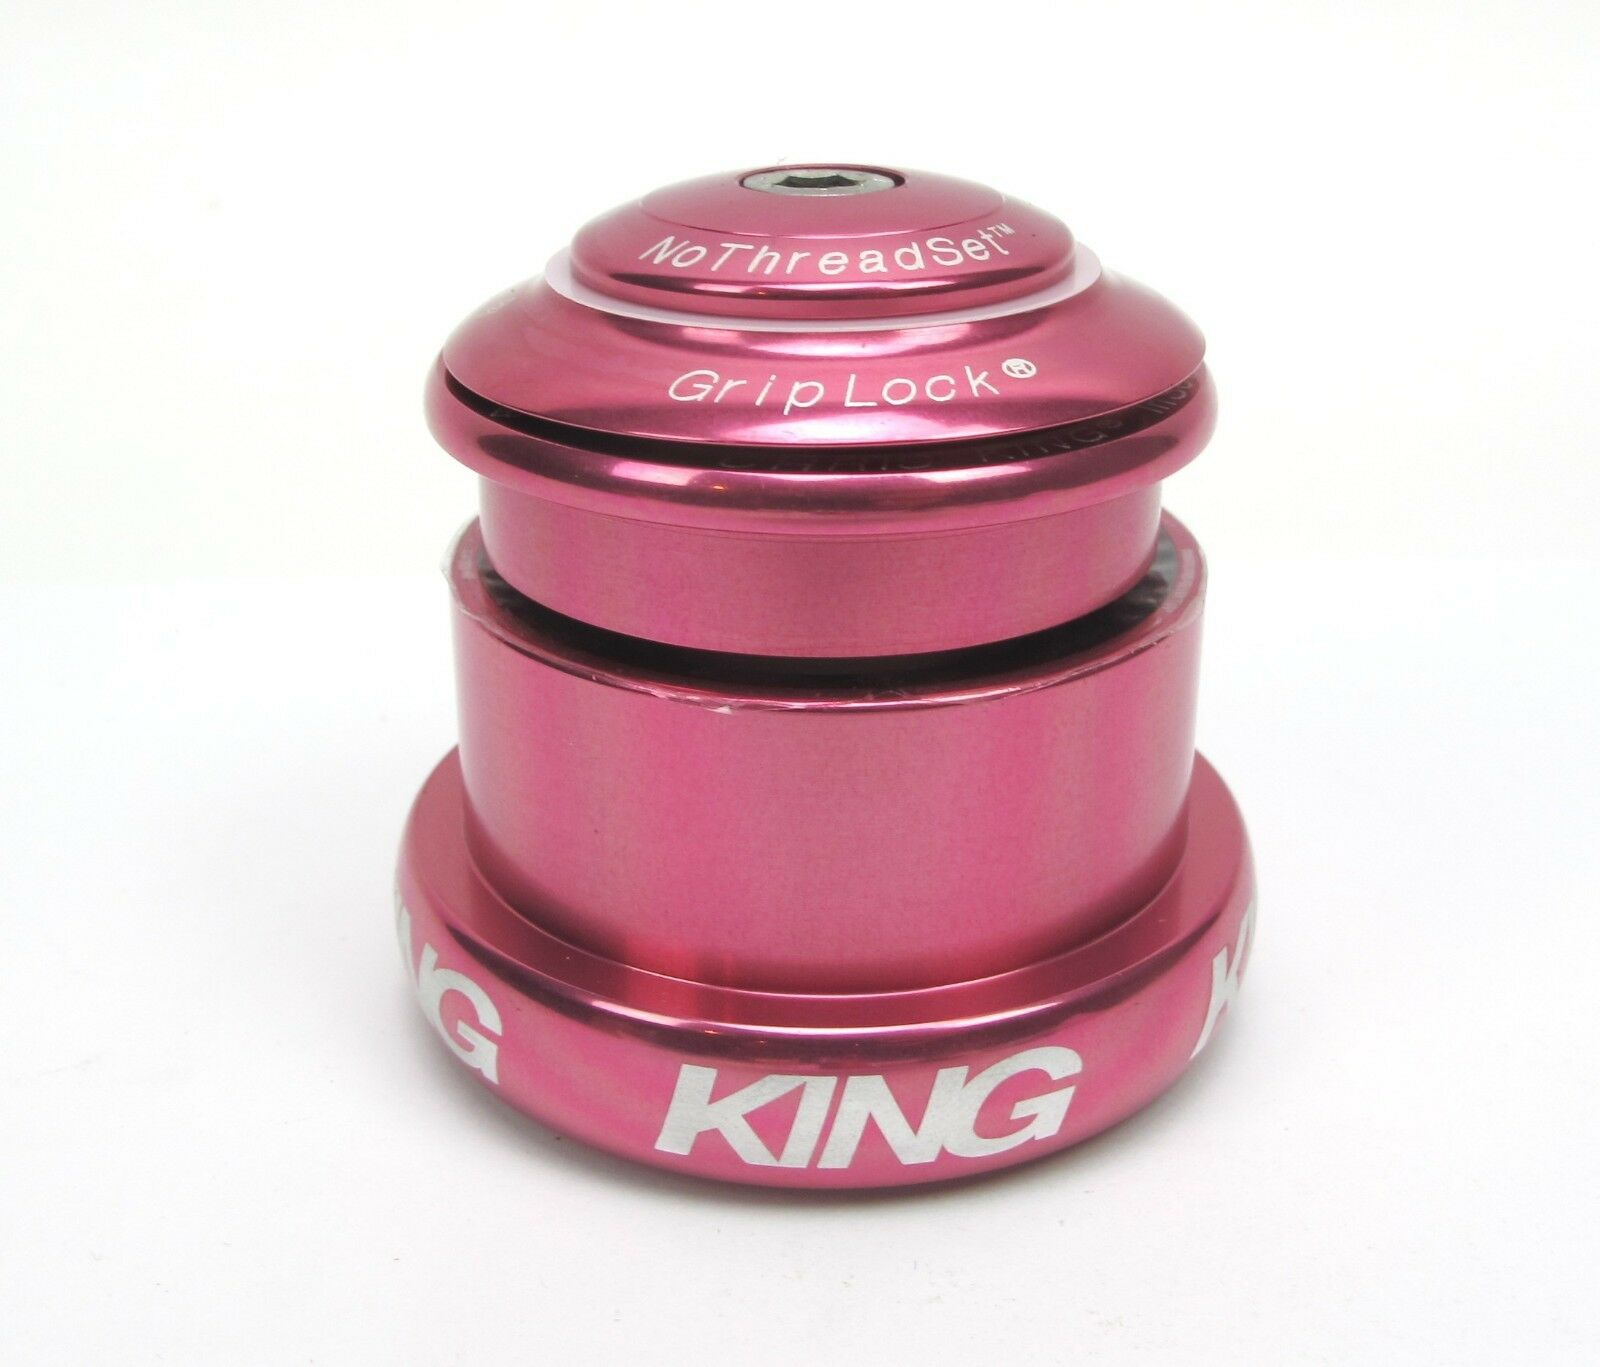 New Chris King Headset Inset I3 ZS44   EC49 Tapered - Pink  - 10 Year Warranty